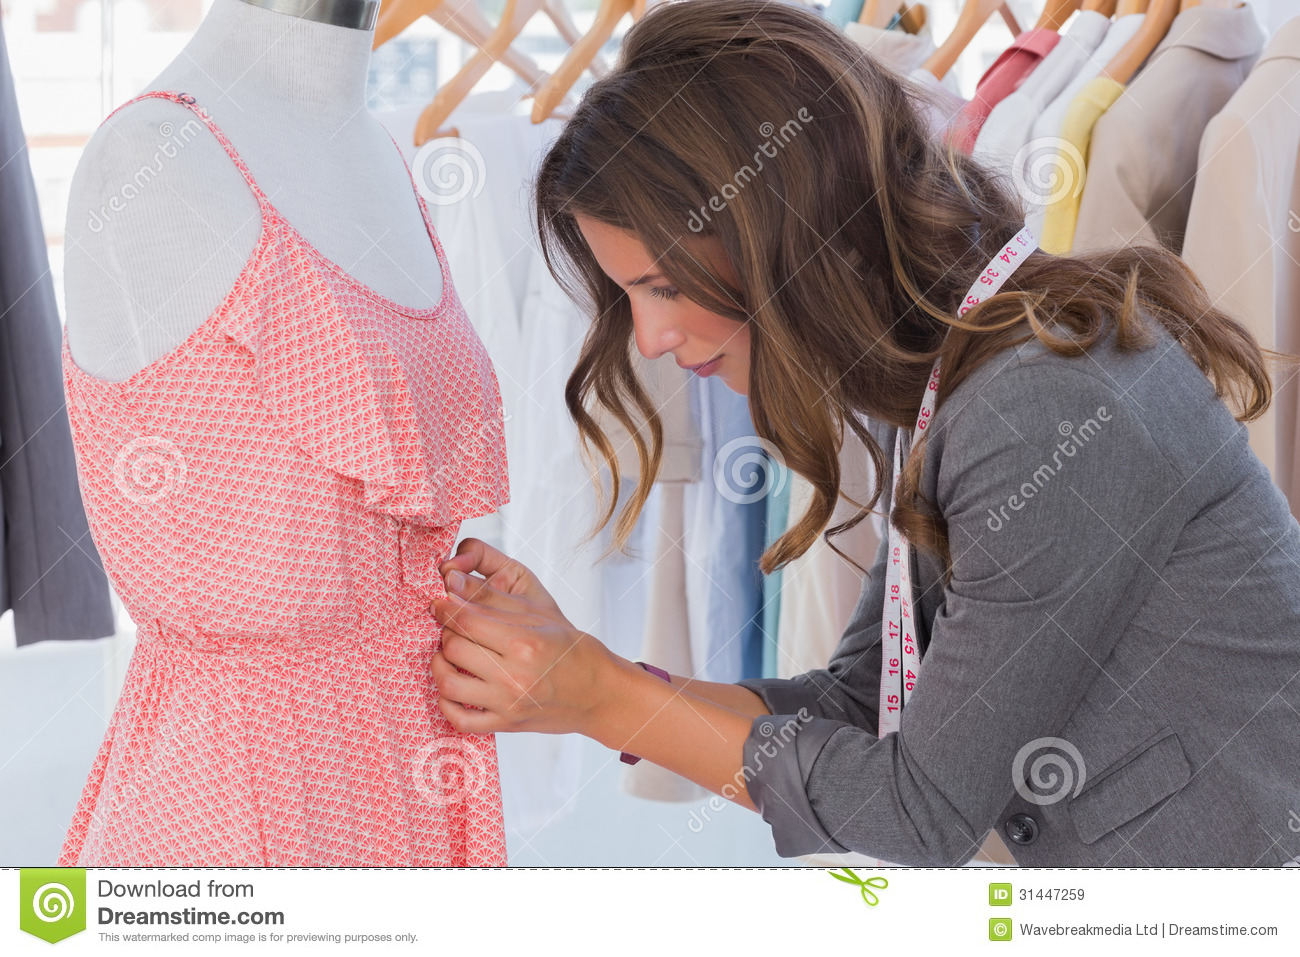 Modern hotel room interior stock photo image 18197840 - Fashion Designer Measuring Dress On A Mannequin Royalty Free Stock Images